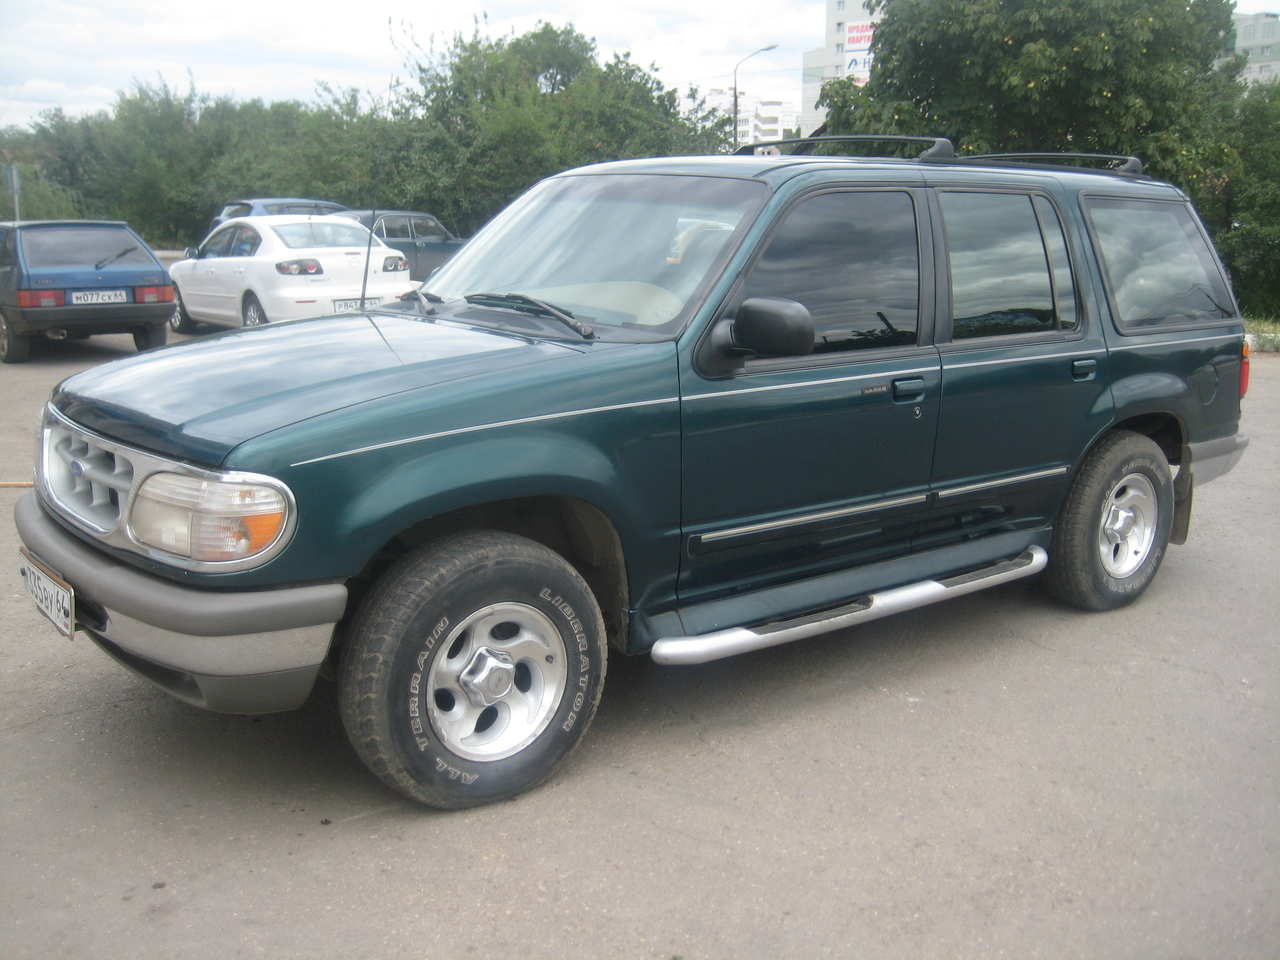 Ford Explorer 4.0 1995 photo - 12